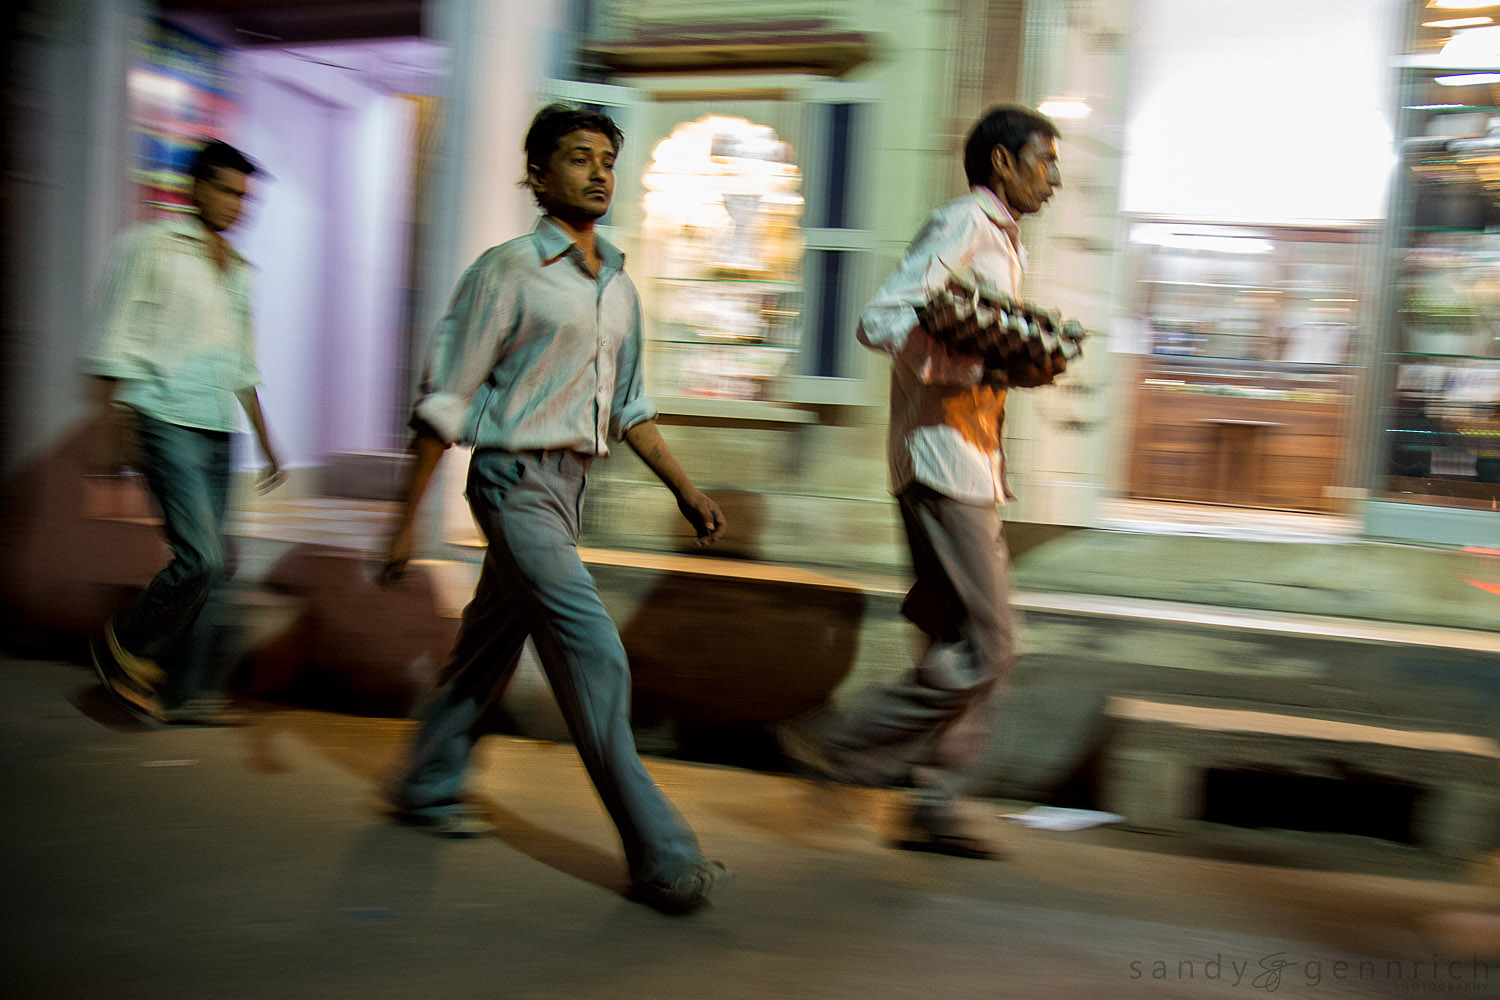 Three Men at Night-Jodhpur-India